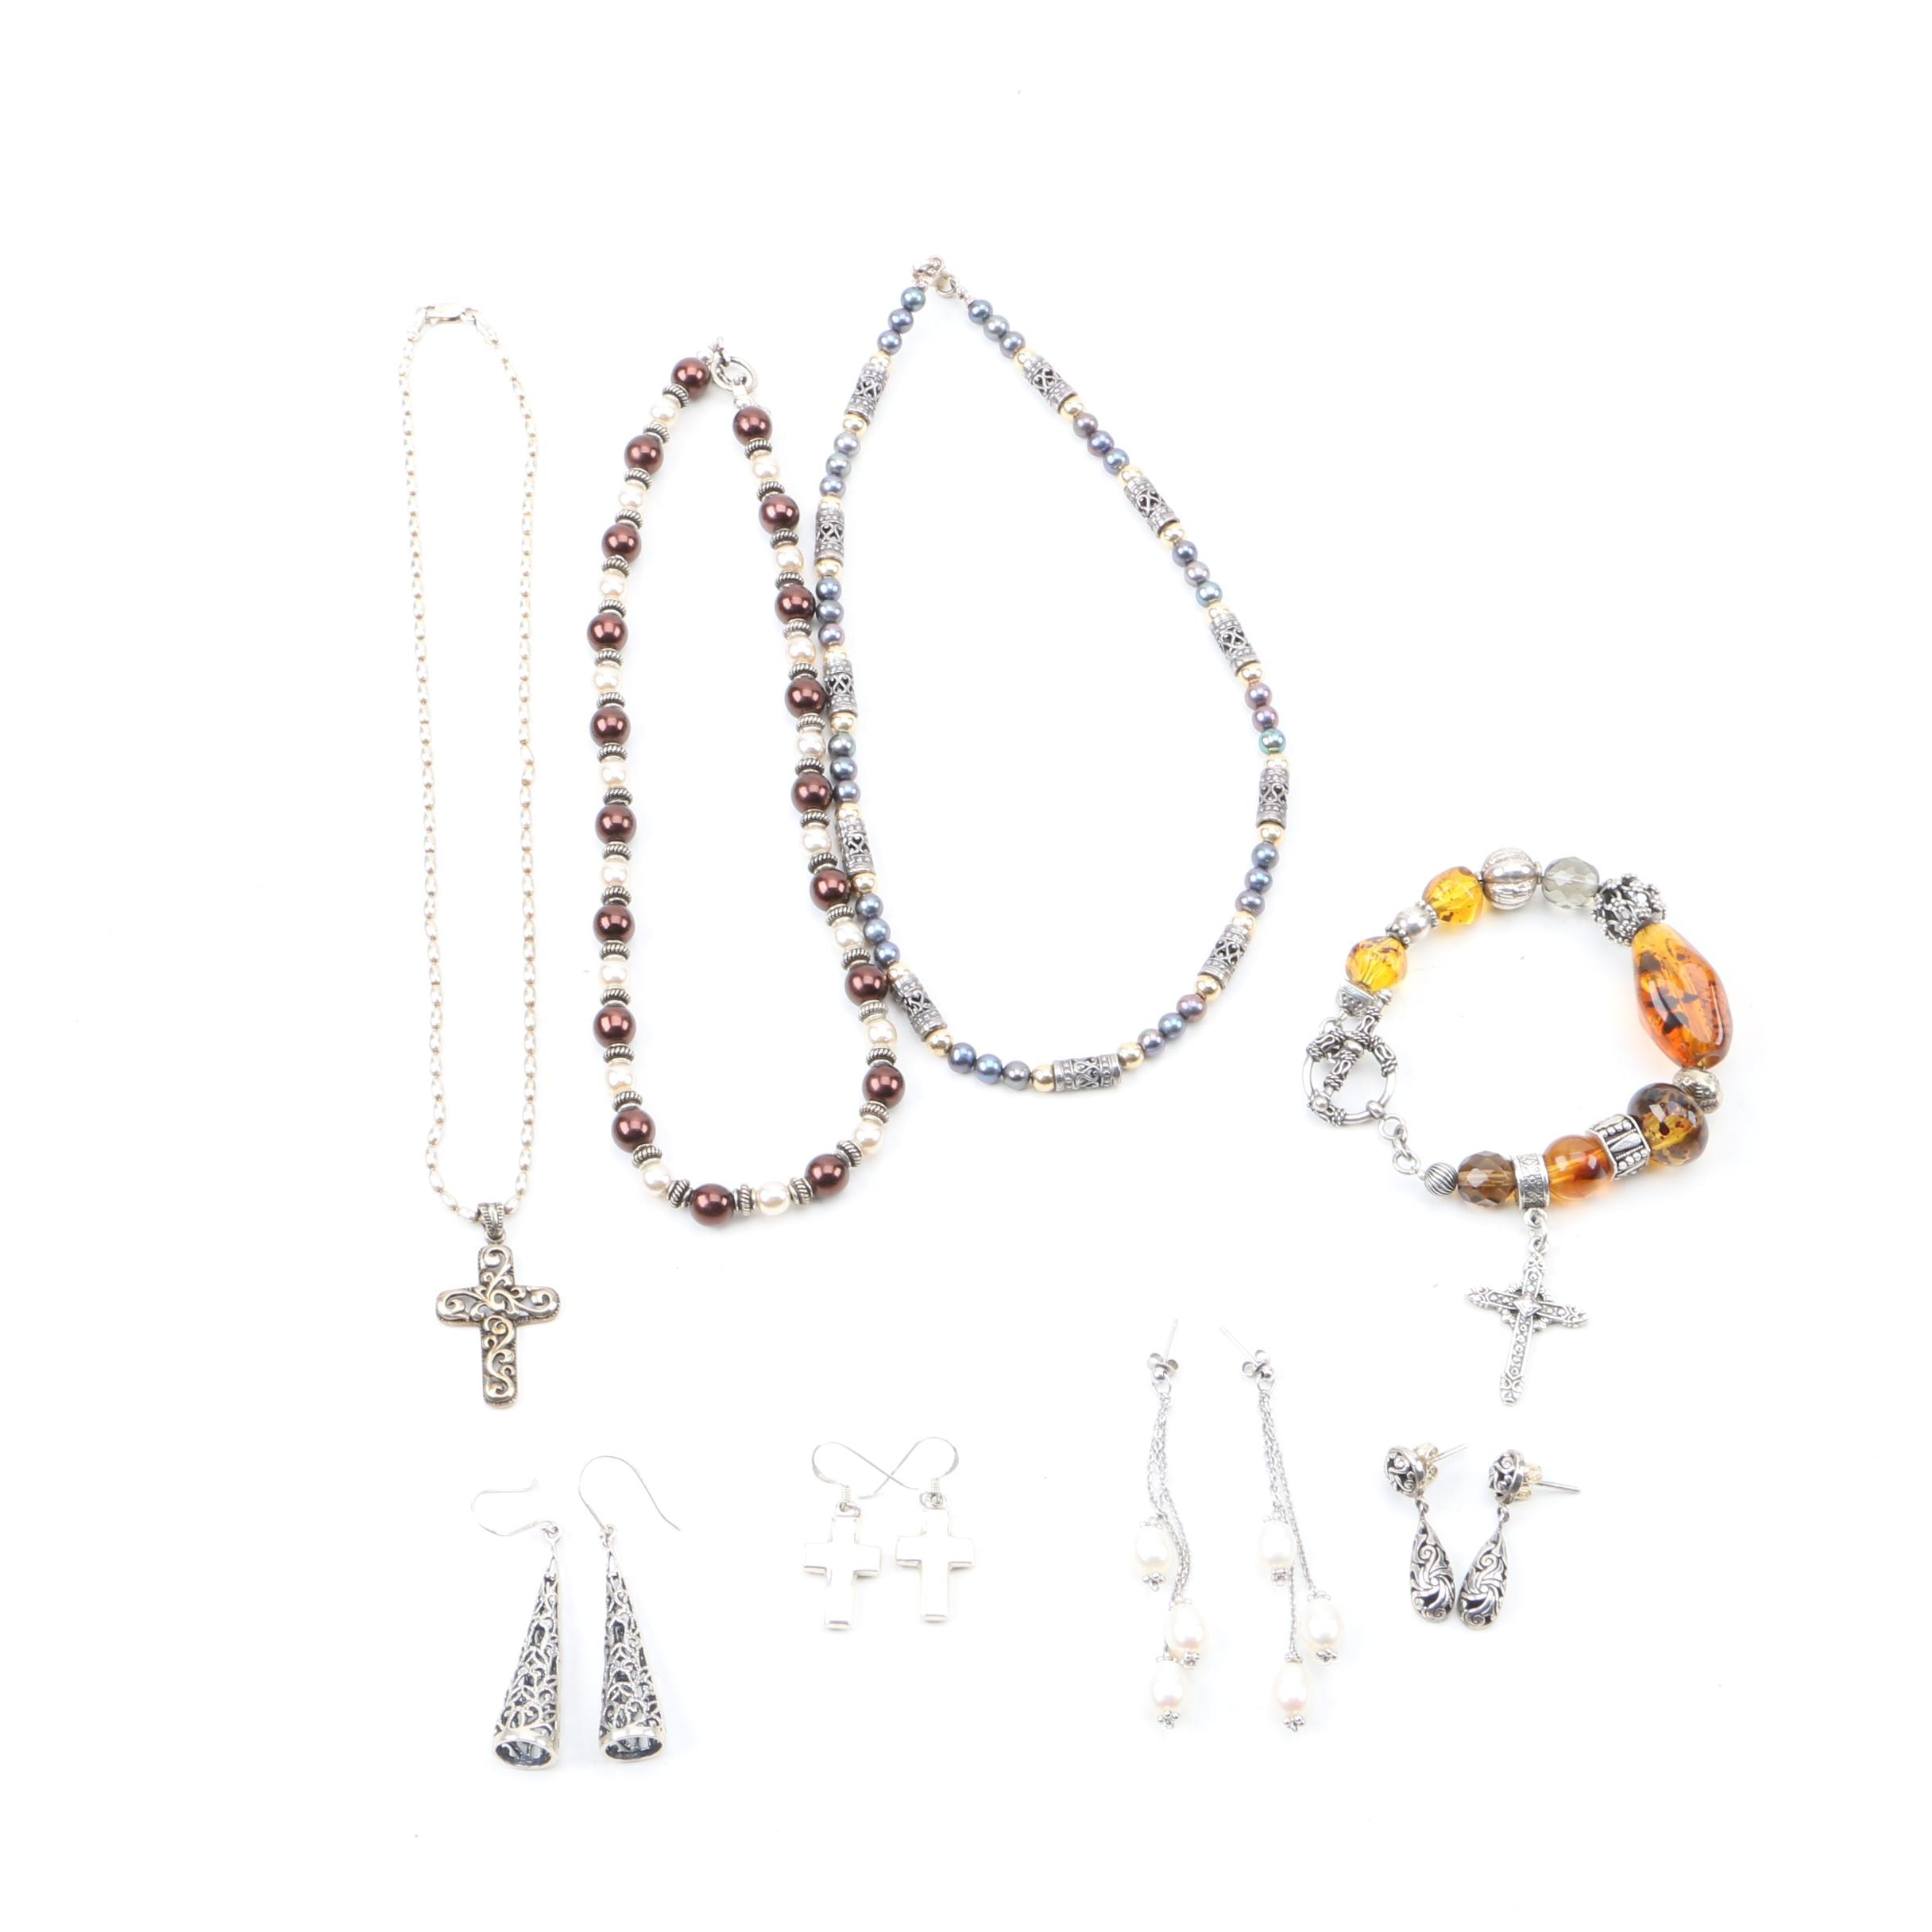 Sterling Silver Jewerly Including Bali Style Bead Work and Imitation Amber